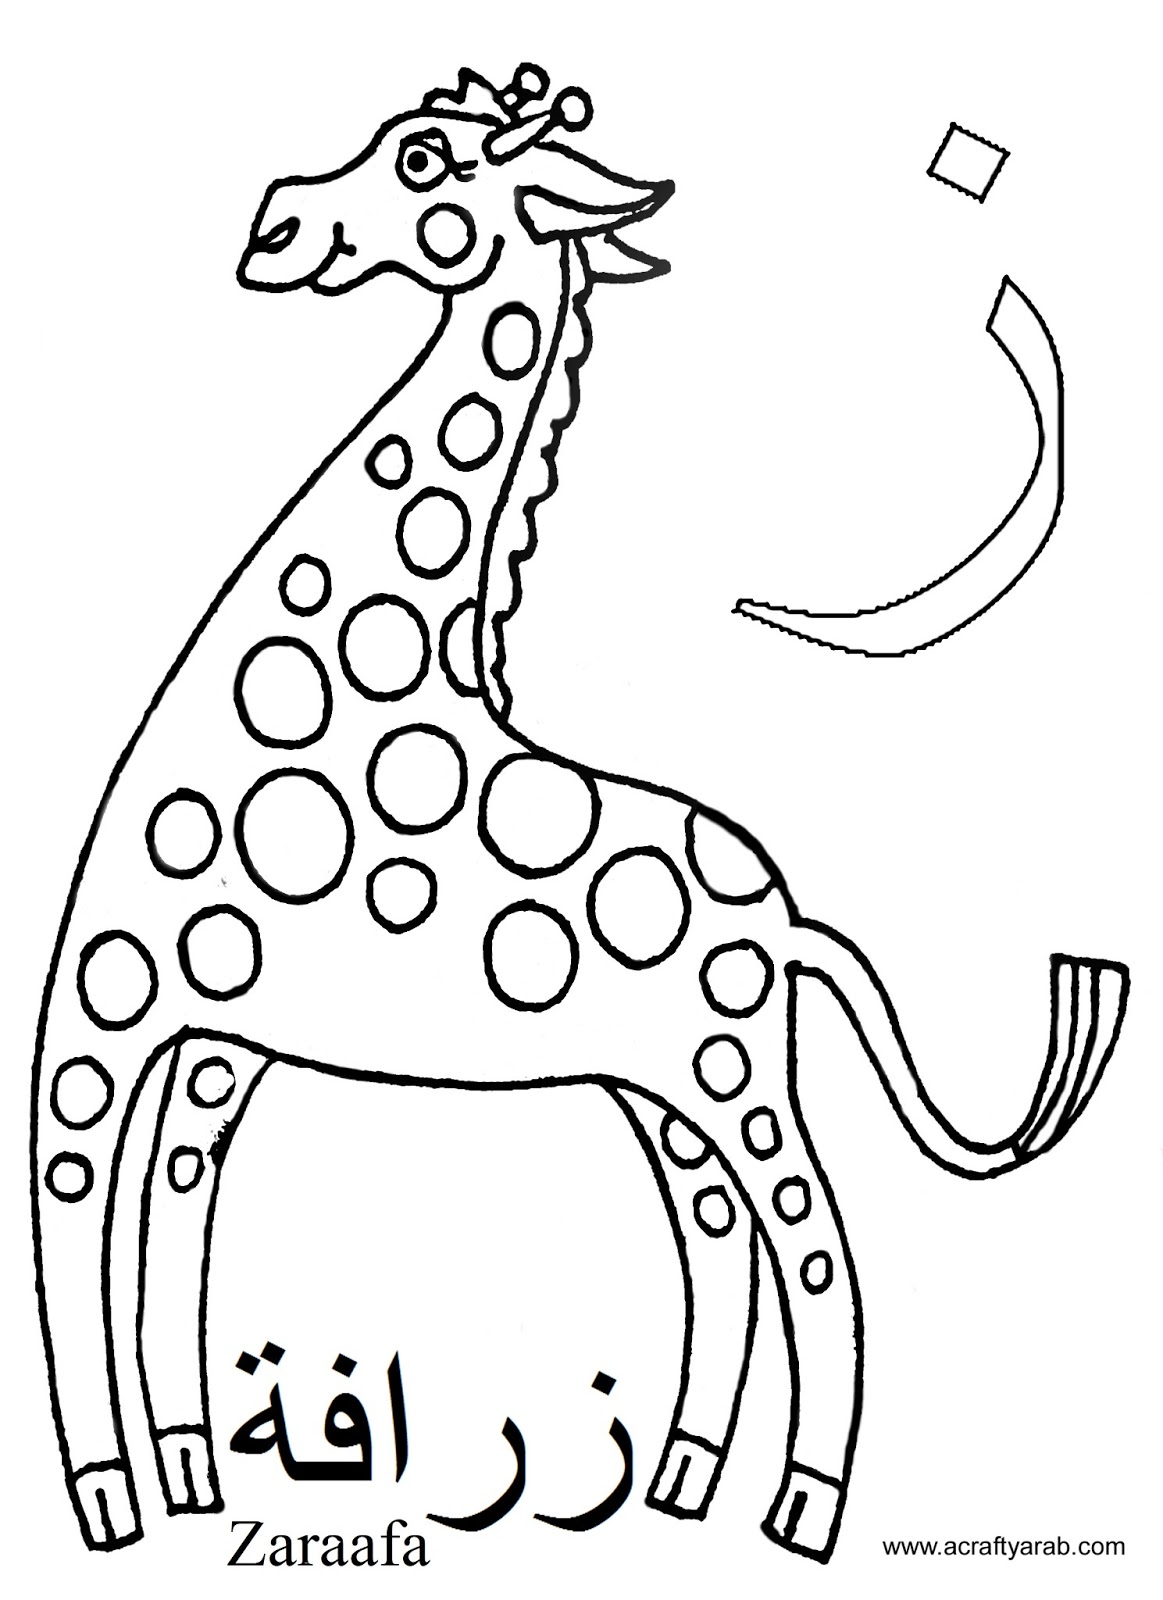 Arabic Alphabet Coloring Pages At Getcolorings